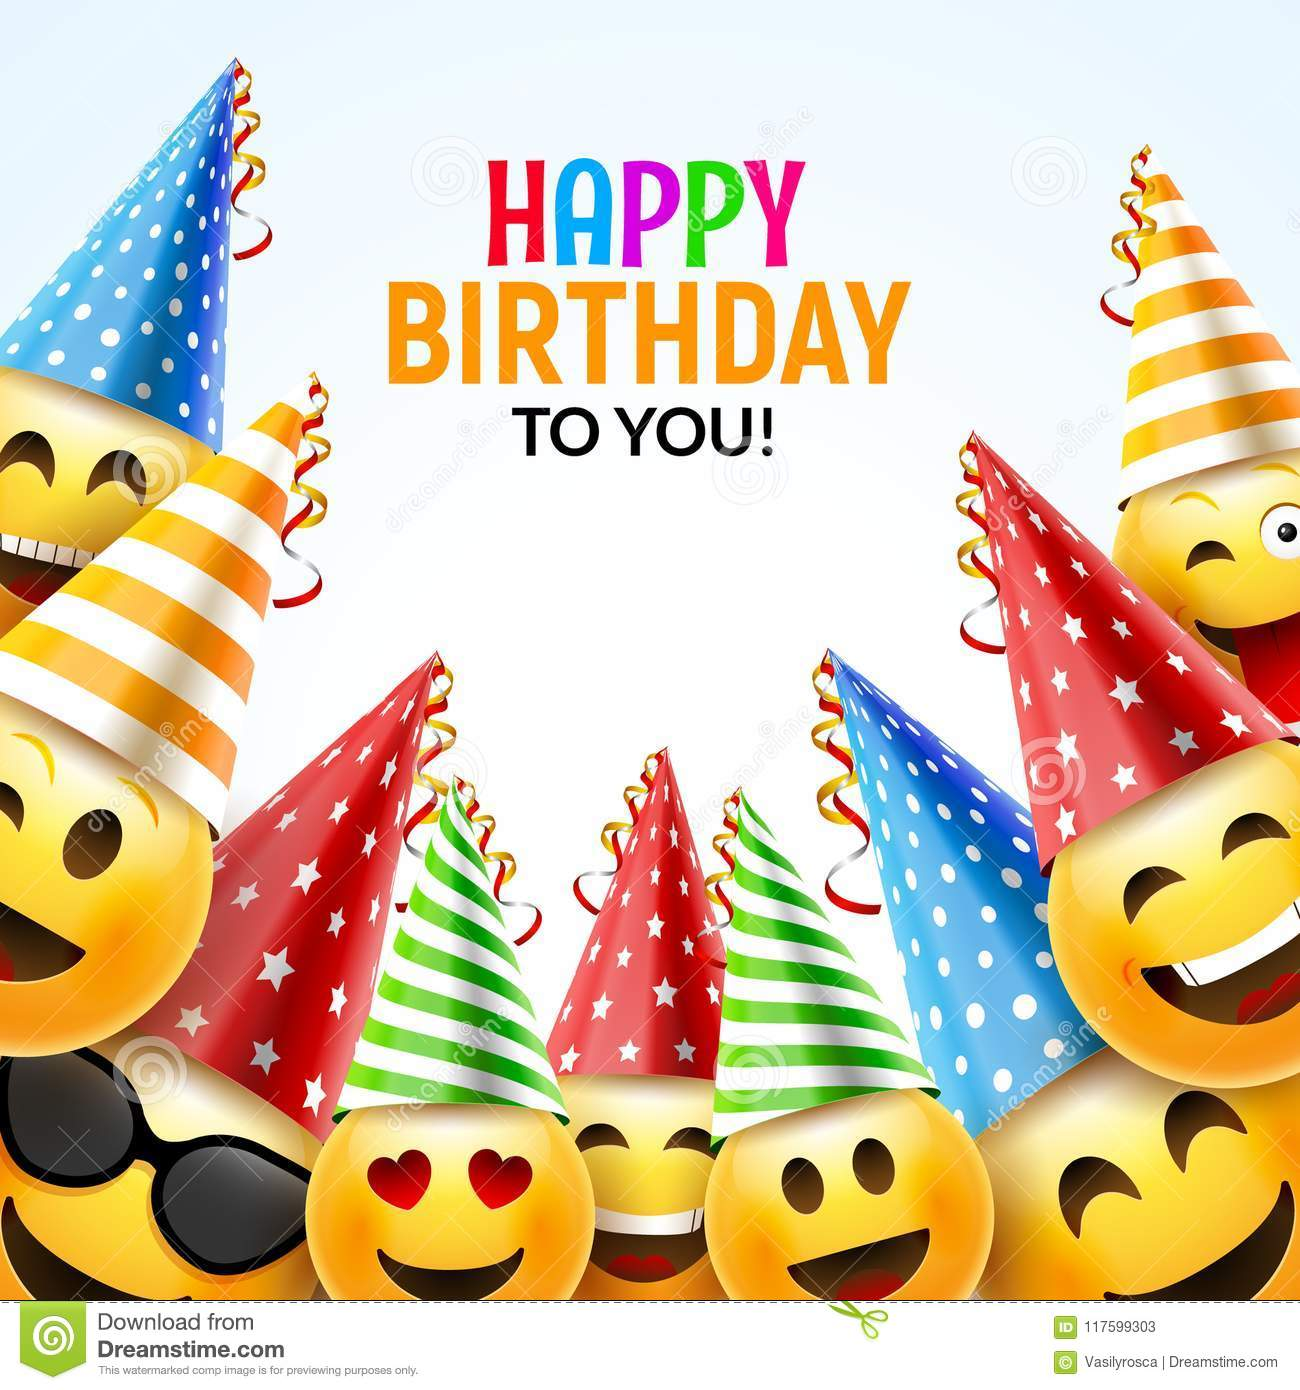 Birthday Happy Smile Greeting Card. Vector Birthday